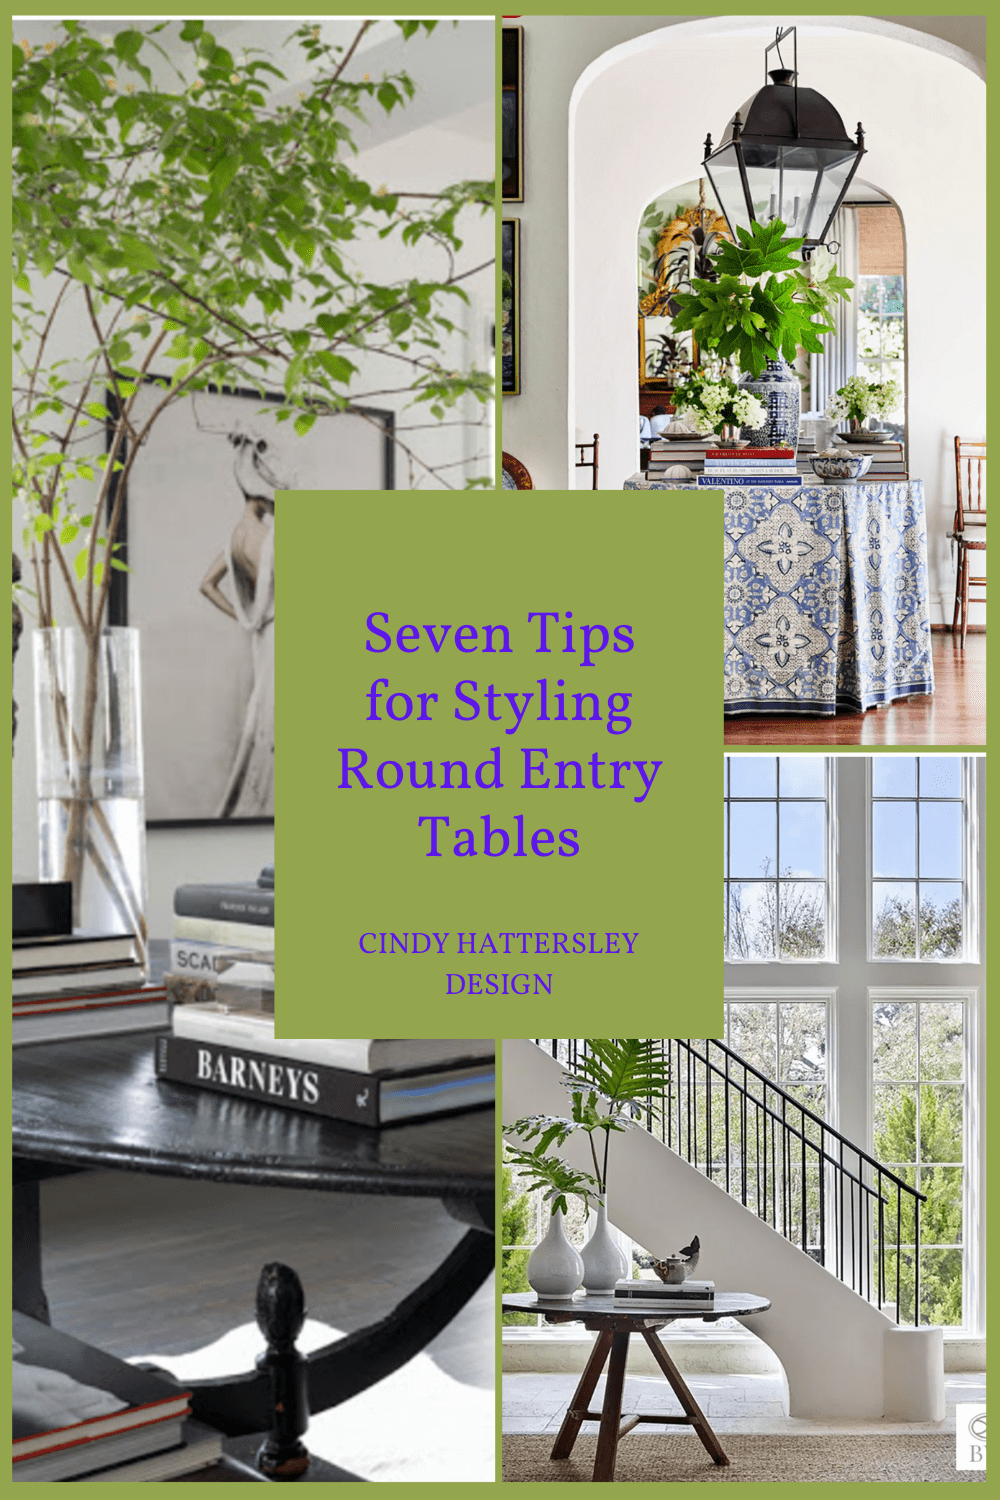 Seven Tips for Styling Round Entry Tables